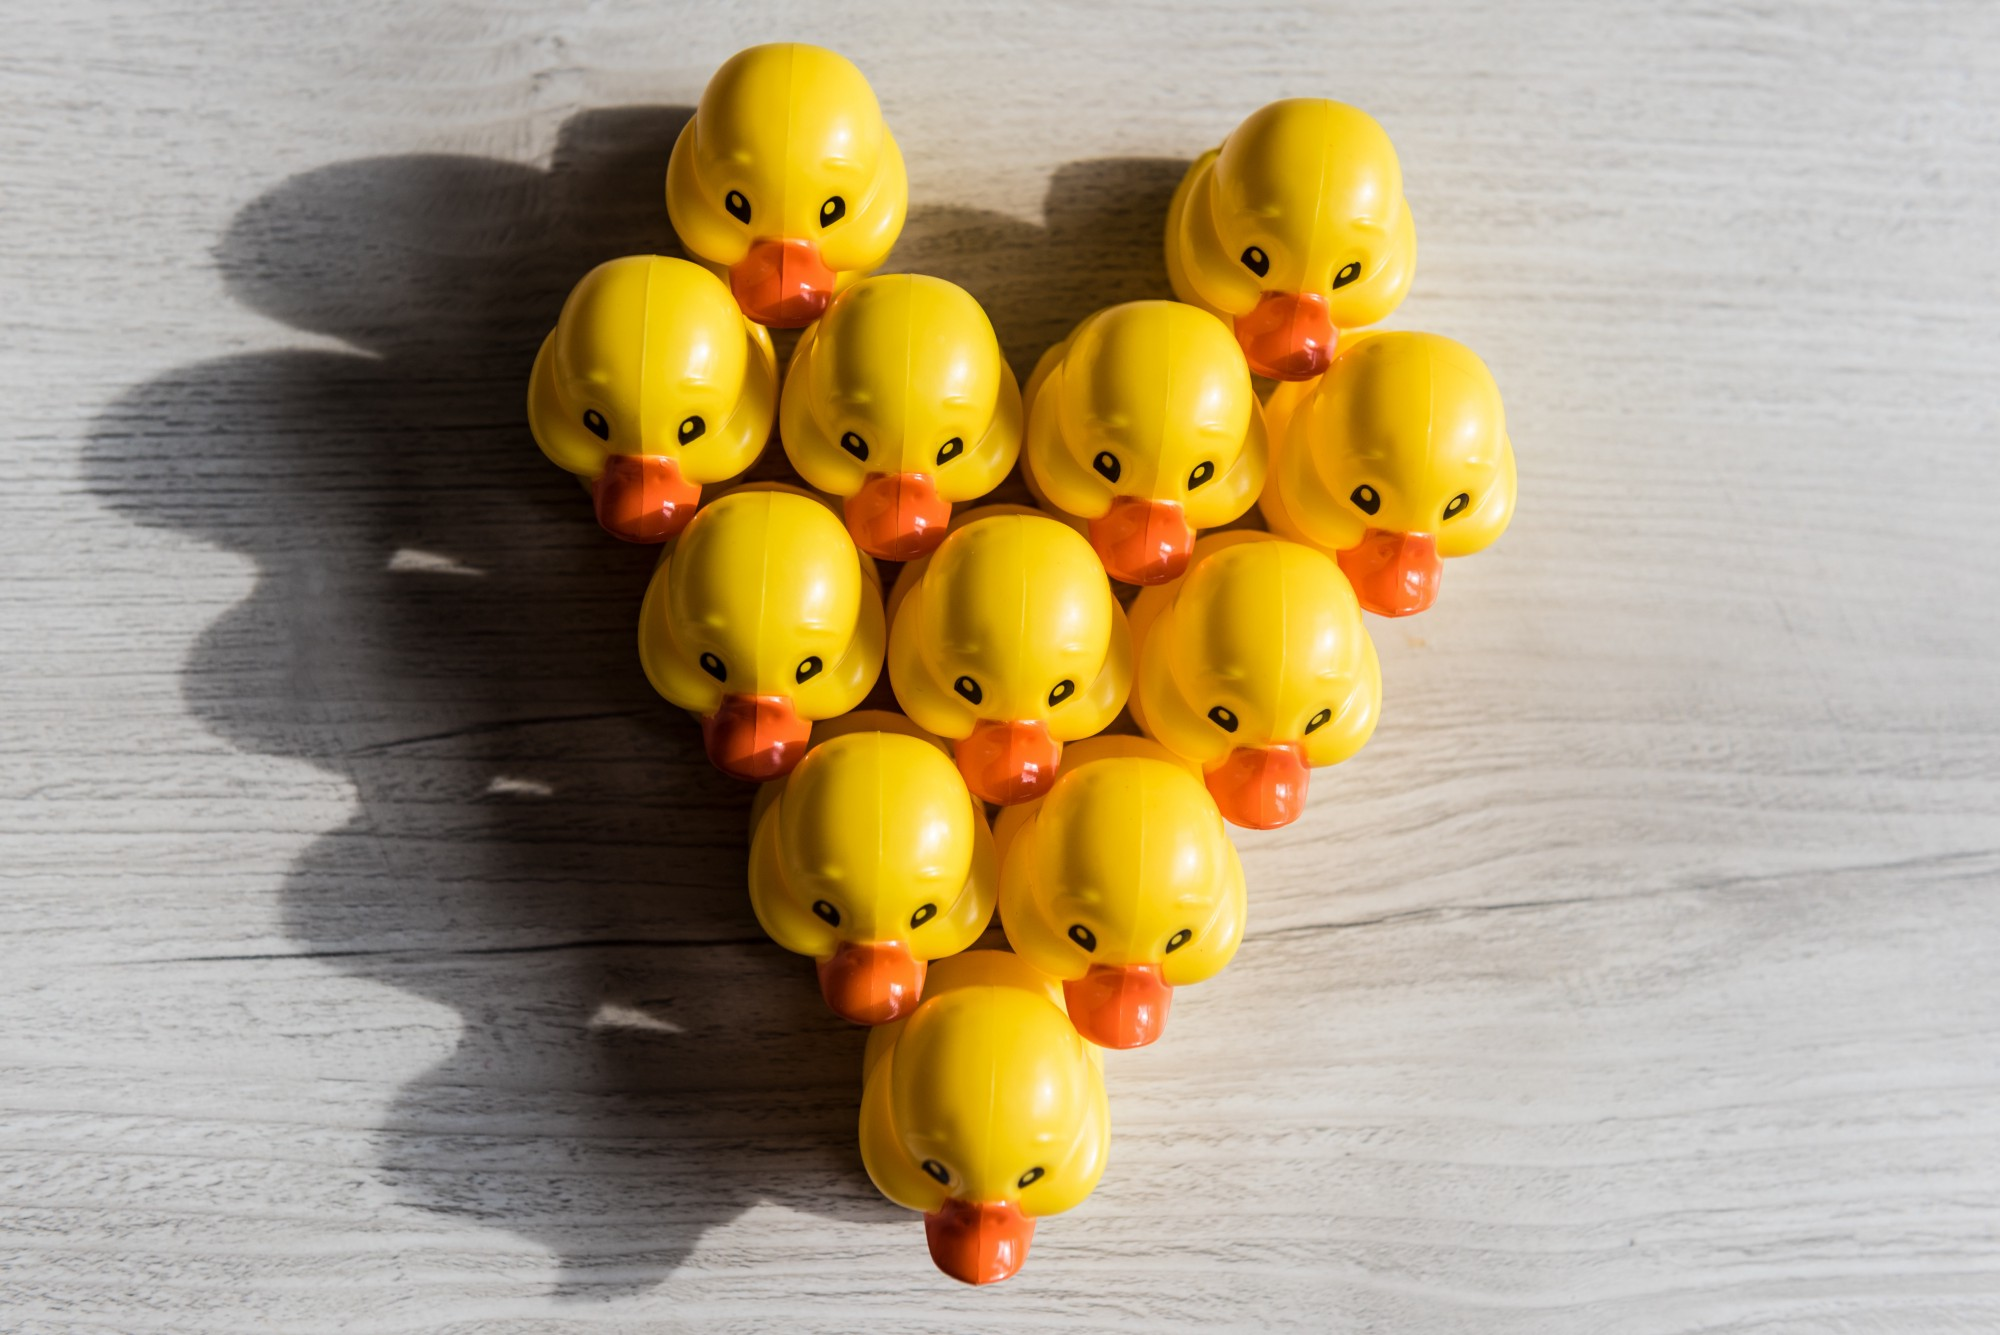 scaling your redux app with ducks - Pictures Of Ducks